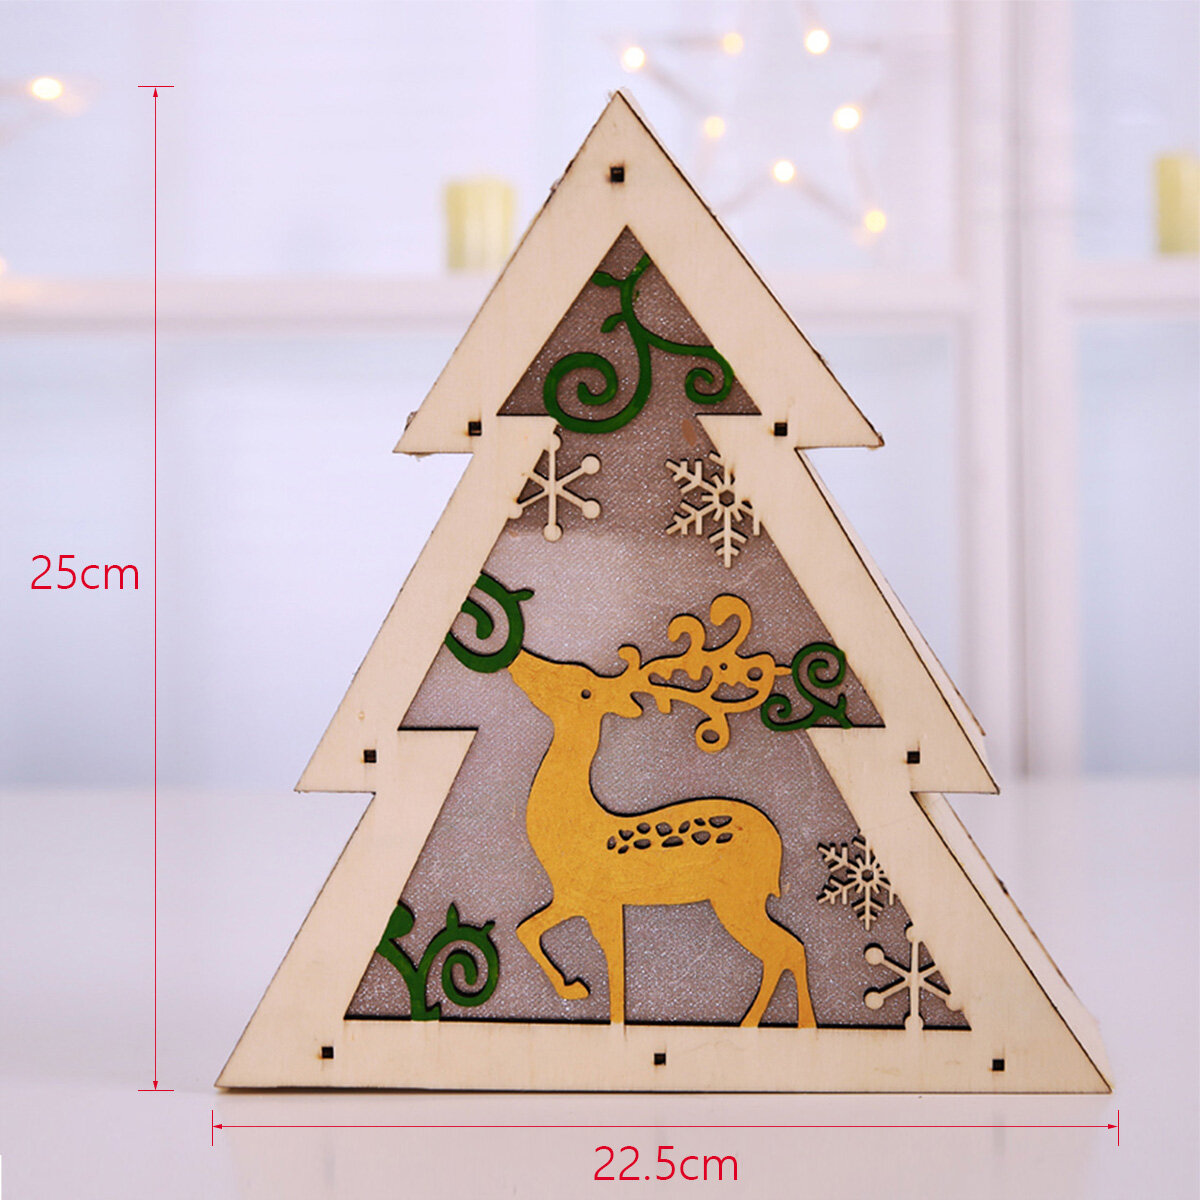 LED Light Christmas Decorations Houten bureau ornamenten - 6